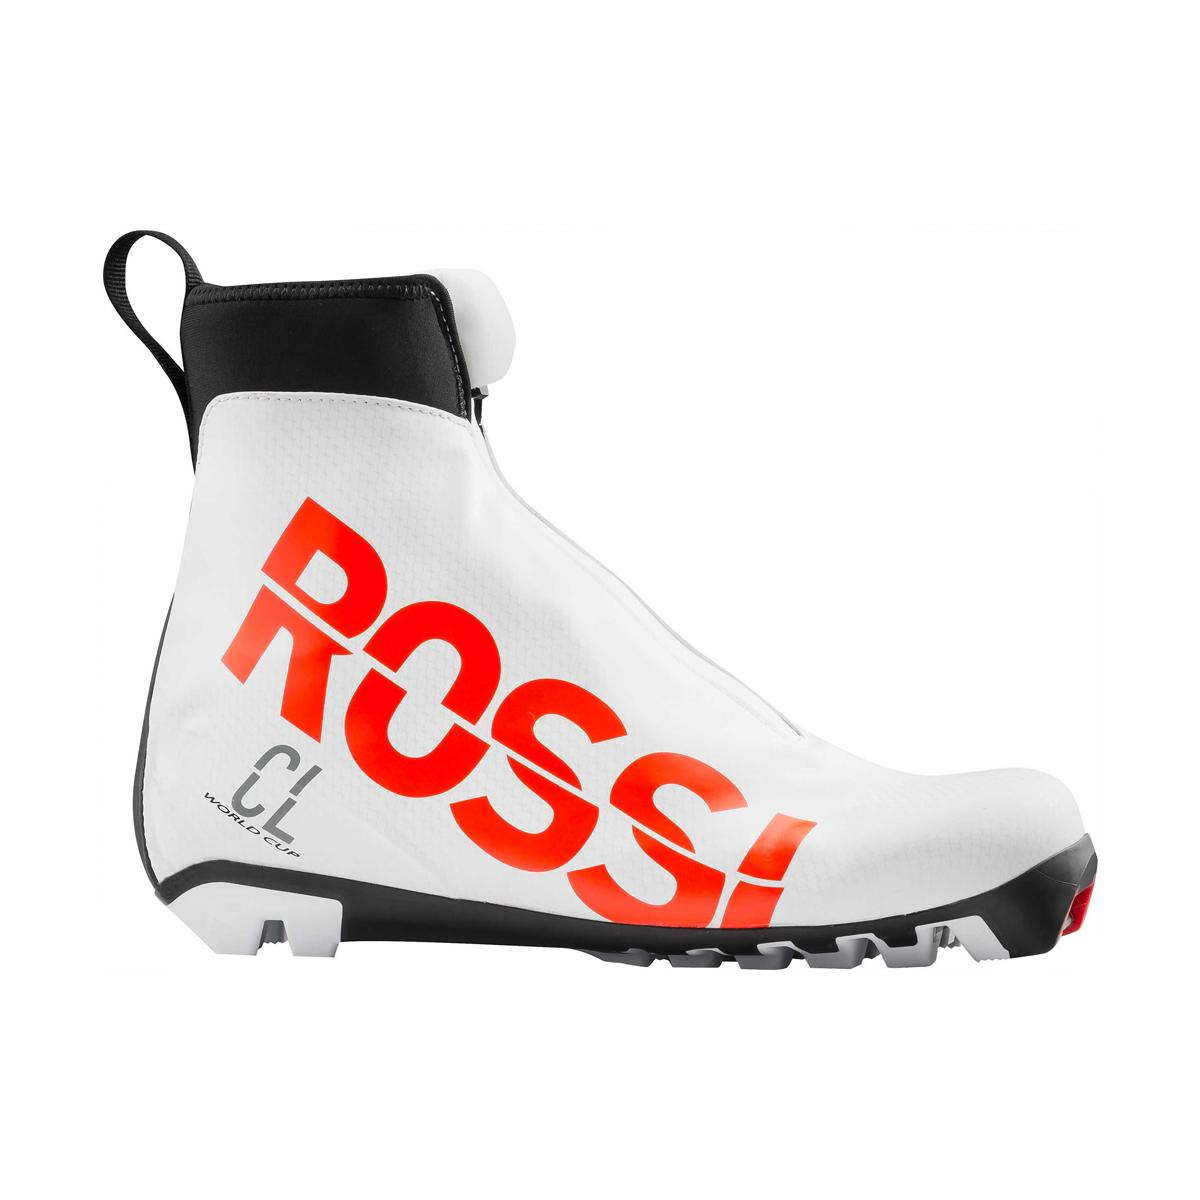 Rossignol Women's X-Ium WC Classic Boot in White and Black